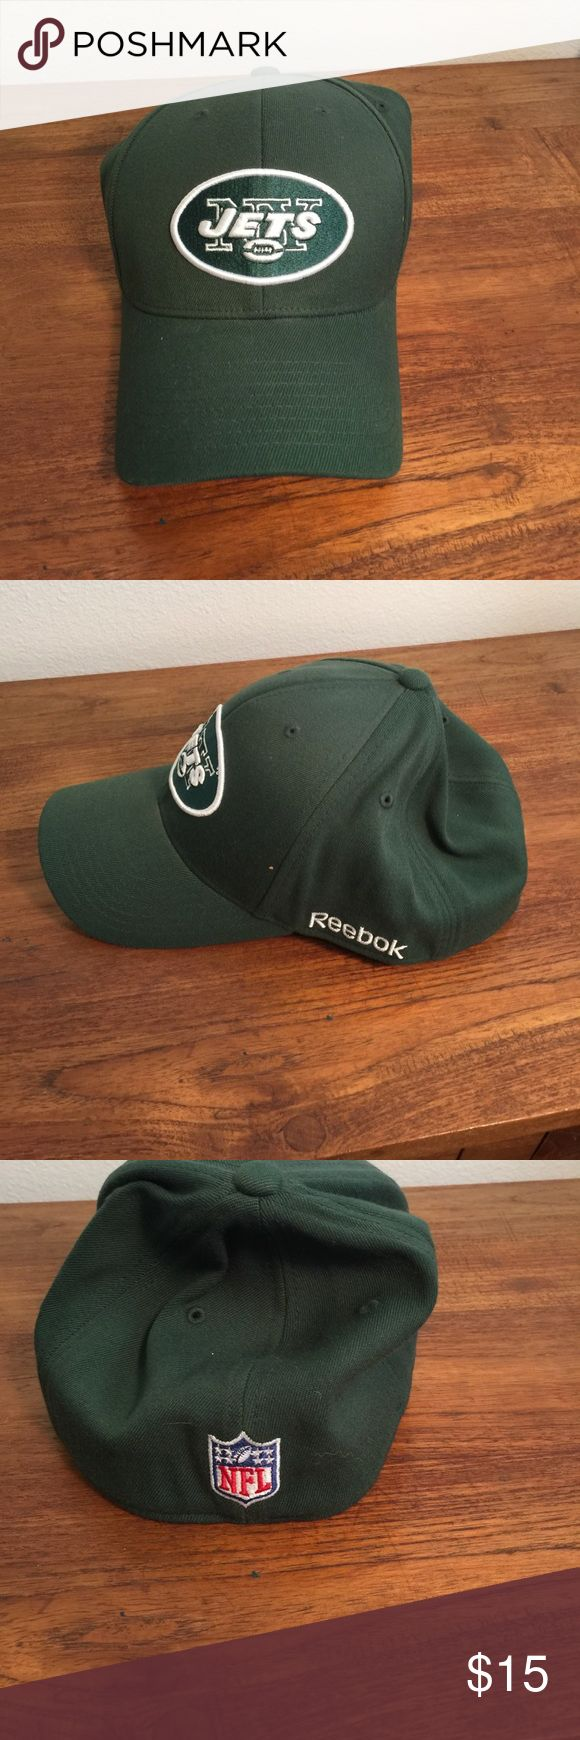 💥 NEW New York Jets hat. L/XL💥 Fantastic New York Jets hat. Reebok NFL on field hat. Great condition. Reebok Other